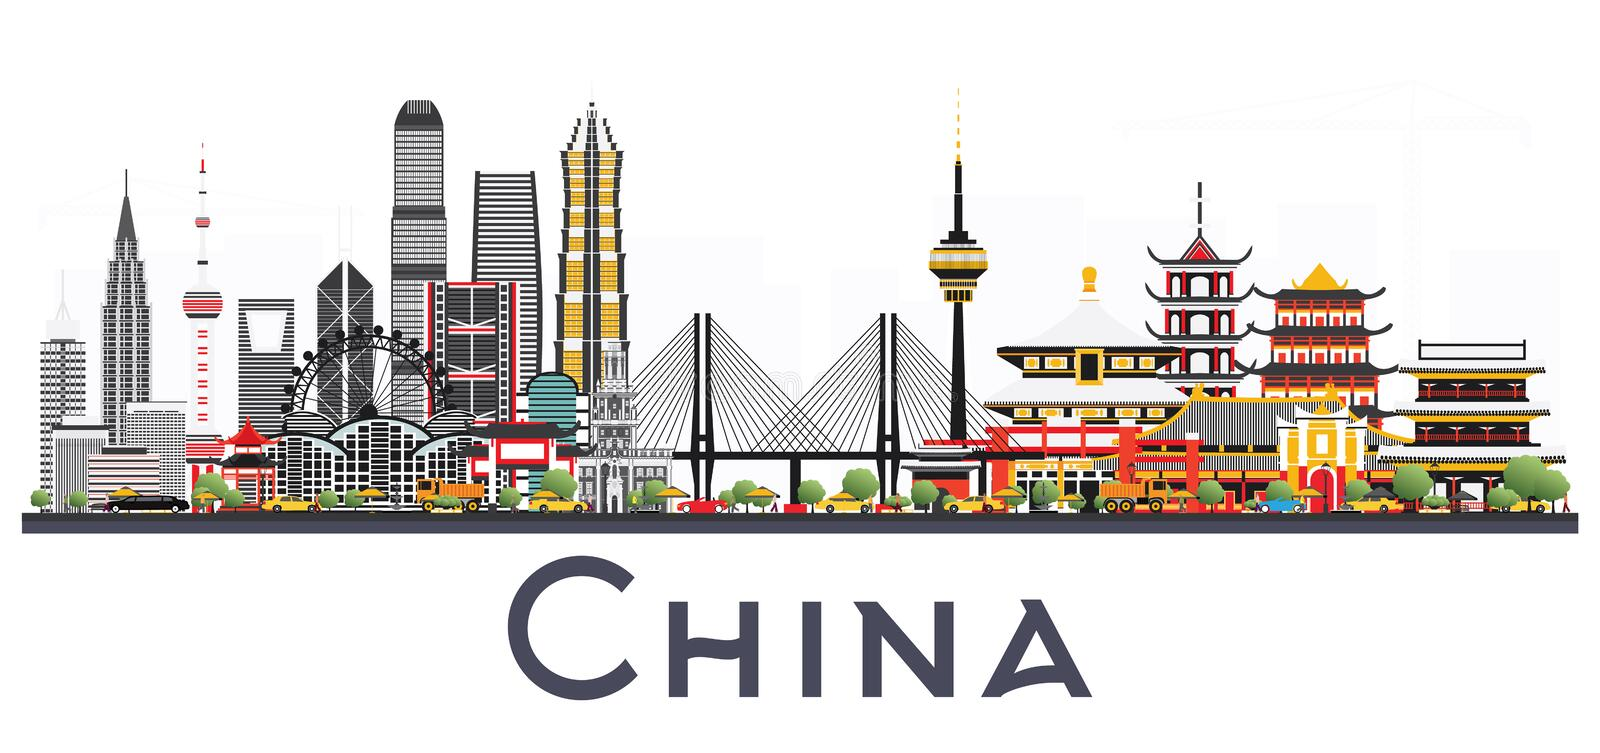 China City Skyline Isolated on White Background. Famous Landmark. S in China. Vector Illustration. Business Travel and Tourism Concept. Image for Presentation royalty free illustration